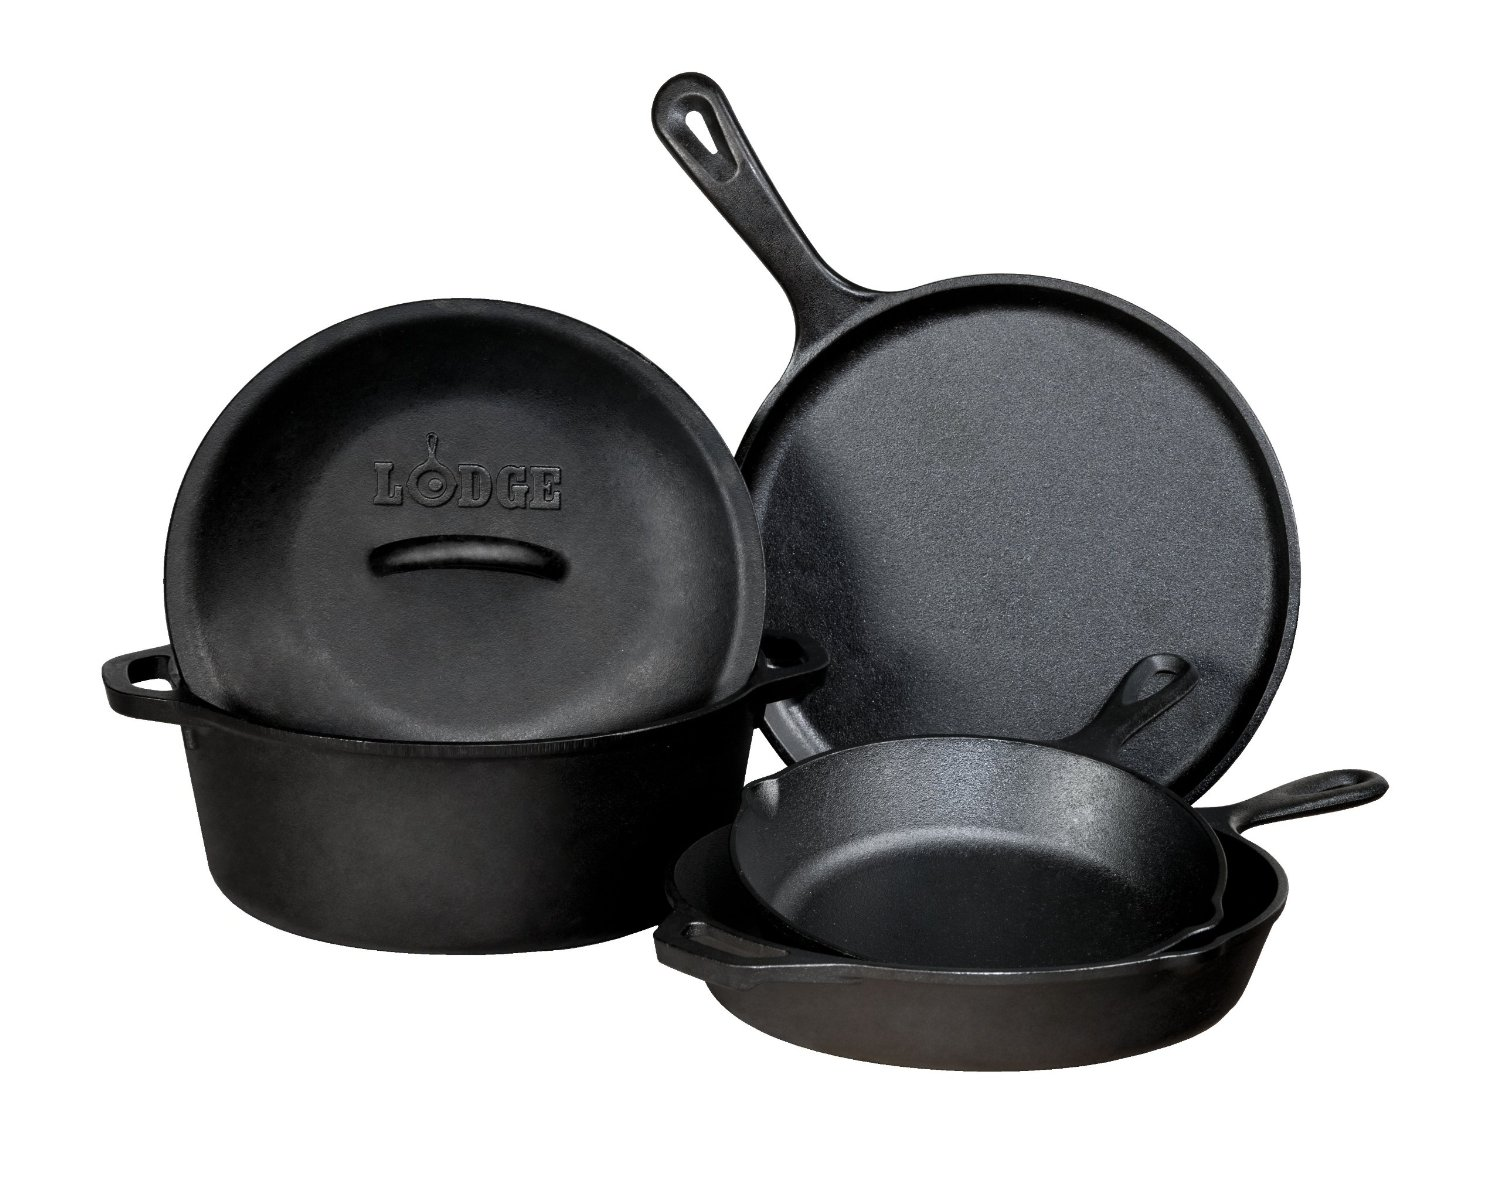 Tbt Gear Cast Iron Cookware